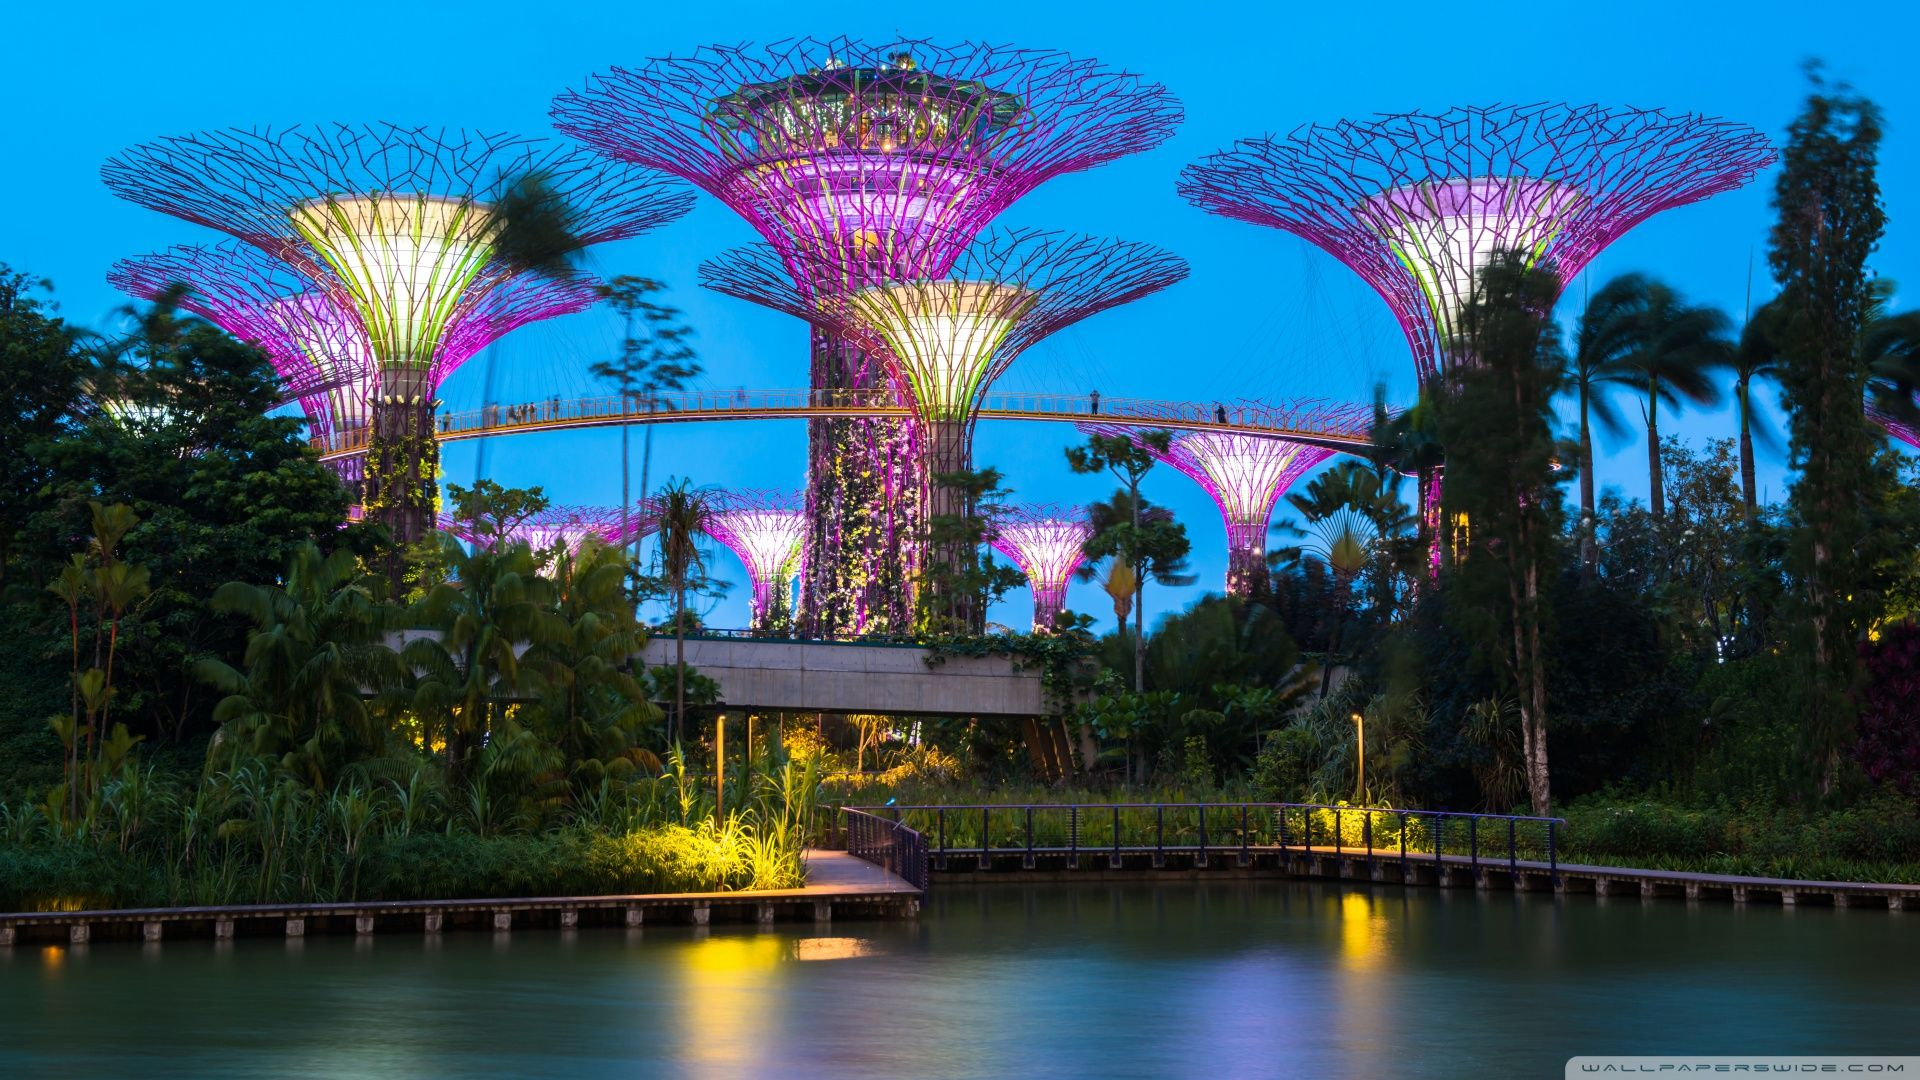 Supertree Grove Gardens By The Bay Singapore Hd Wallpapers 19201080 Hdwallpaper Wallpaper Image Singapore Garden Gardens By The Bay Tower Garden